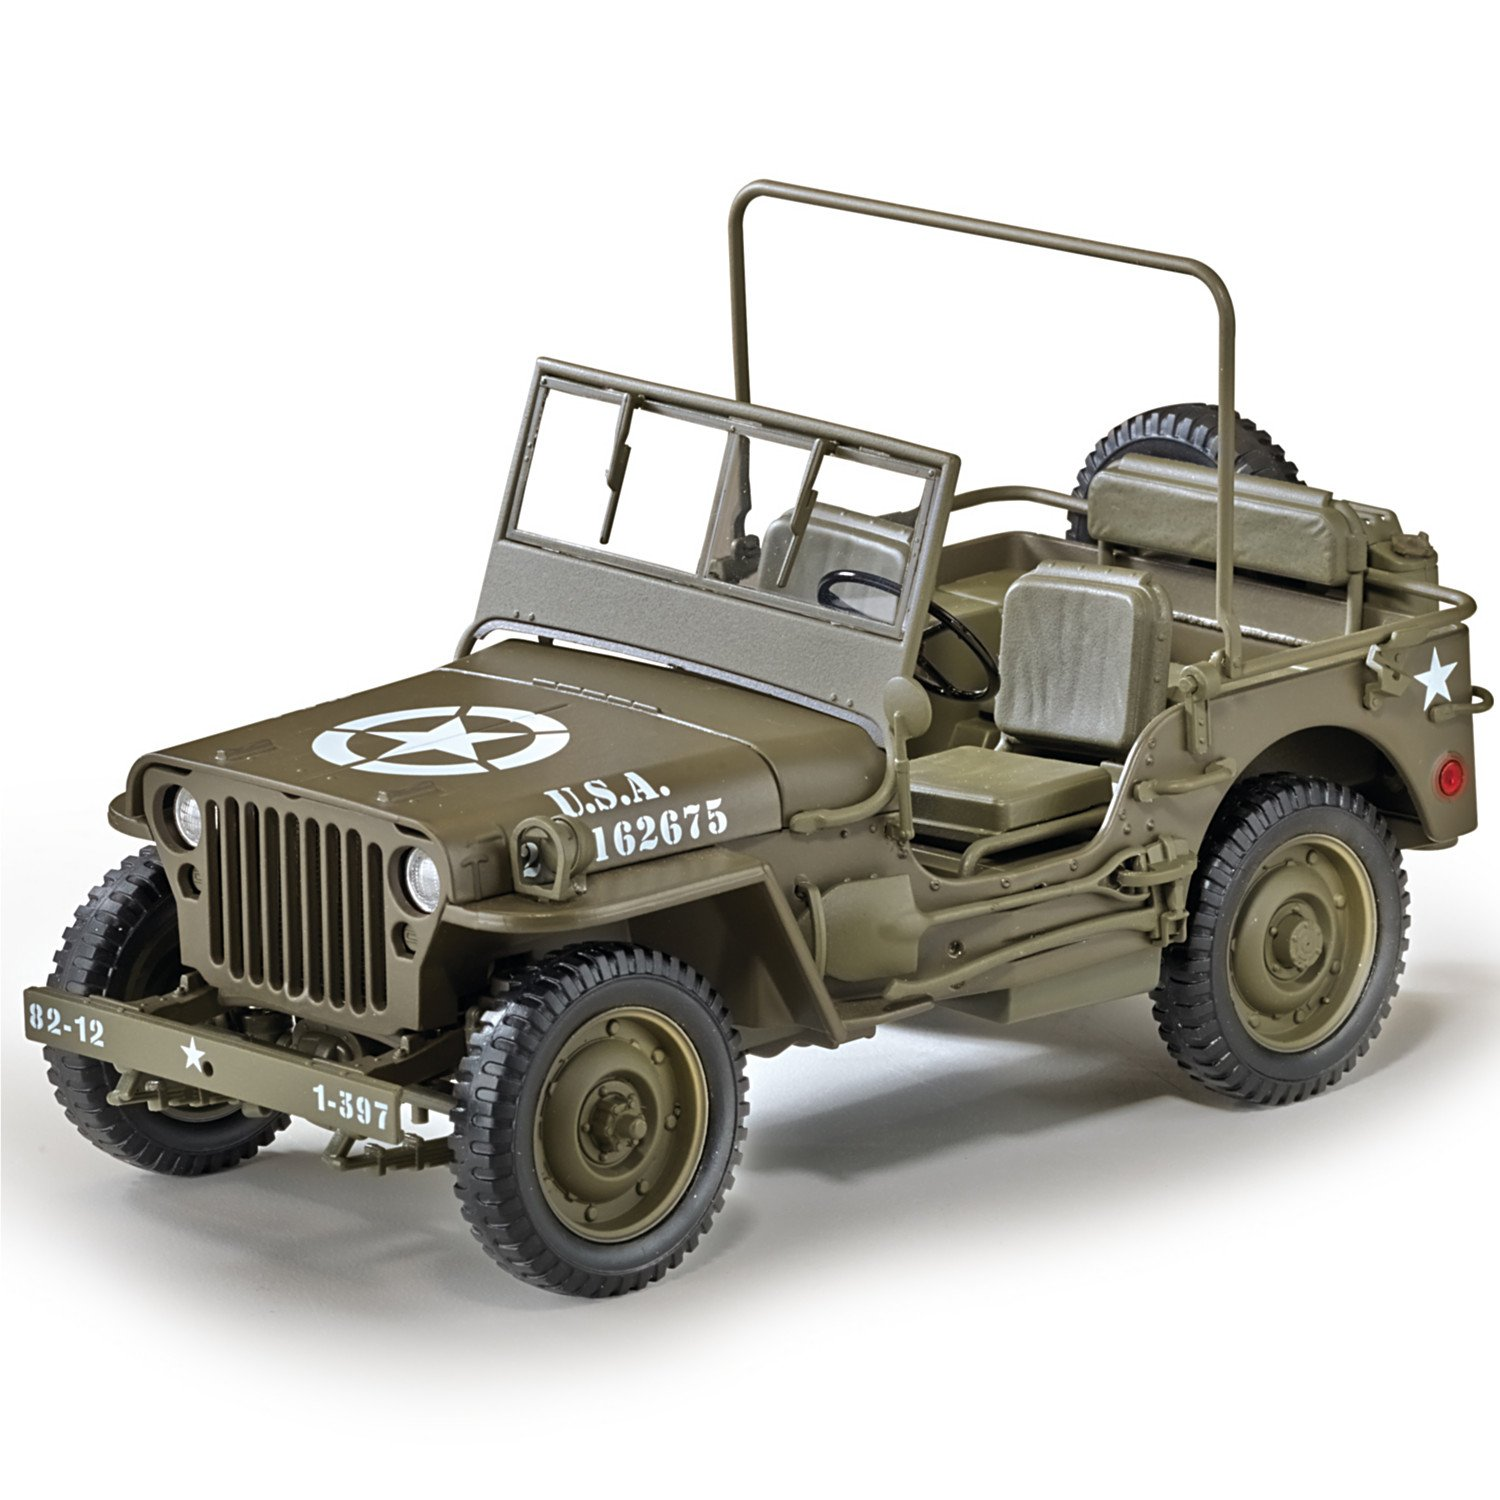 Cj2a Willys Jeep Headlight Wiring Cheap Army Find Deals On Line At Get Quotations 118 Scale Diecast Replica Of The World War Ii 1 4